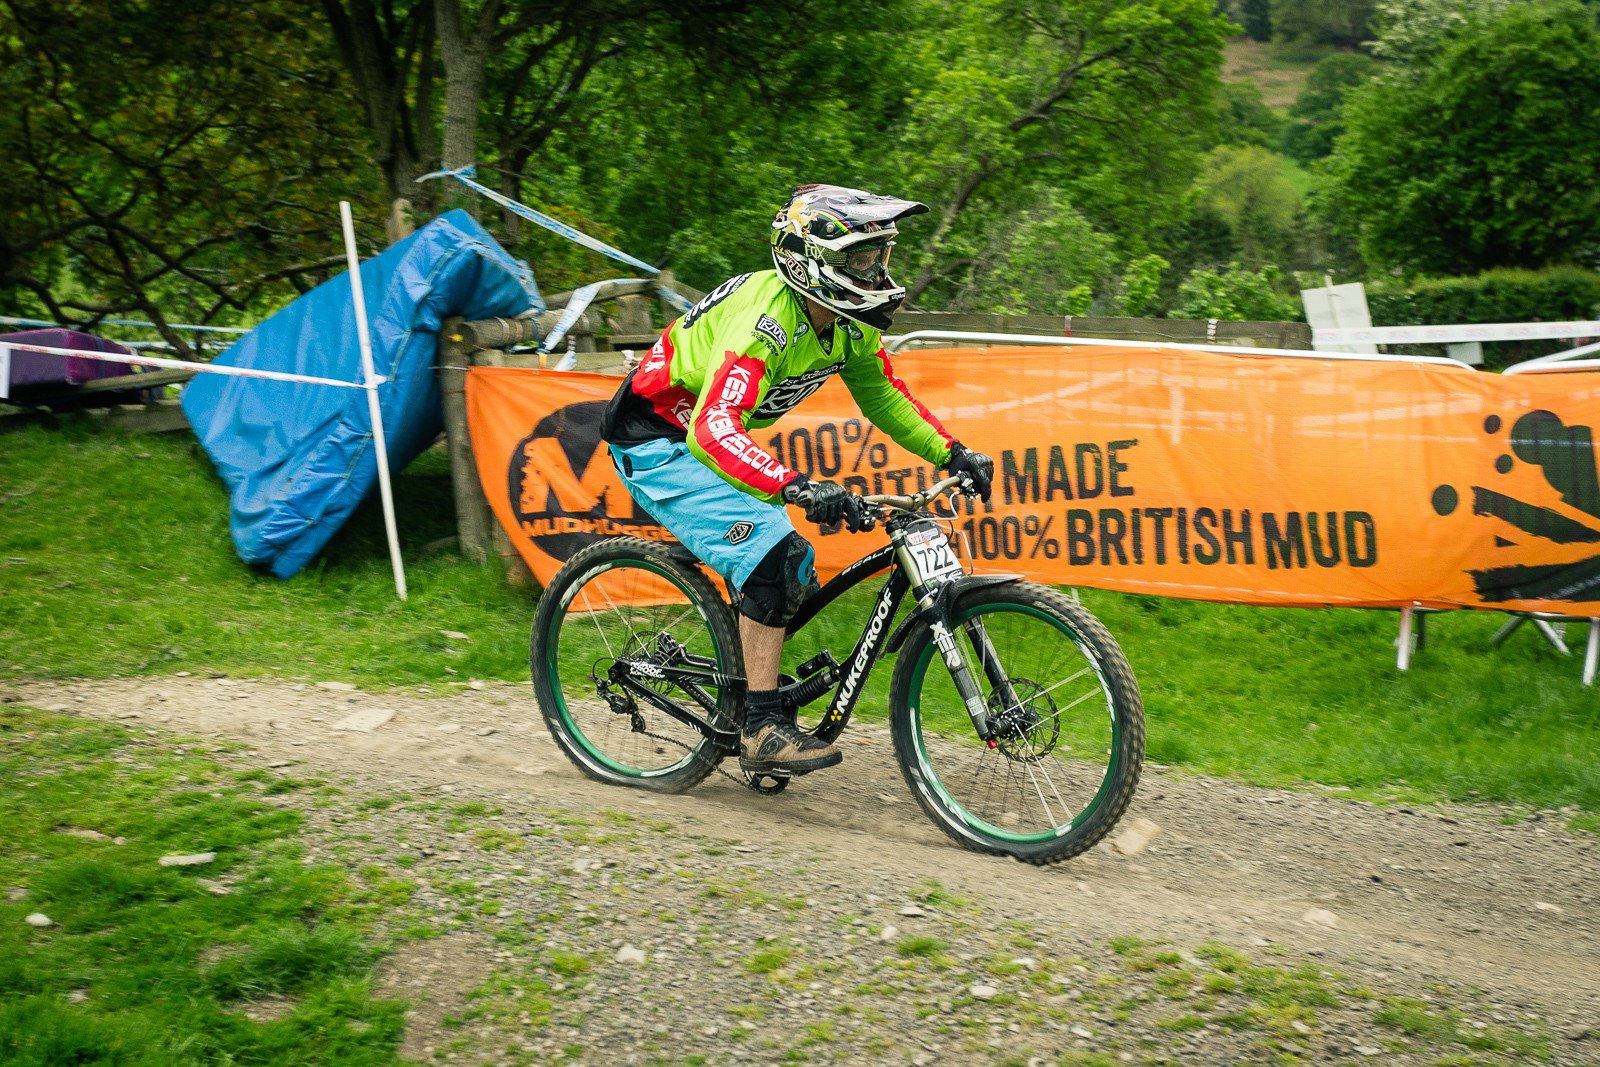 Nukeproof Scalp G-ed Out at Llangollen - G-Out Project - Llangollen BDS 2015 - Mountain Biking Pictures - Vital MTB